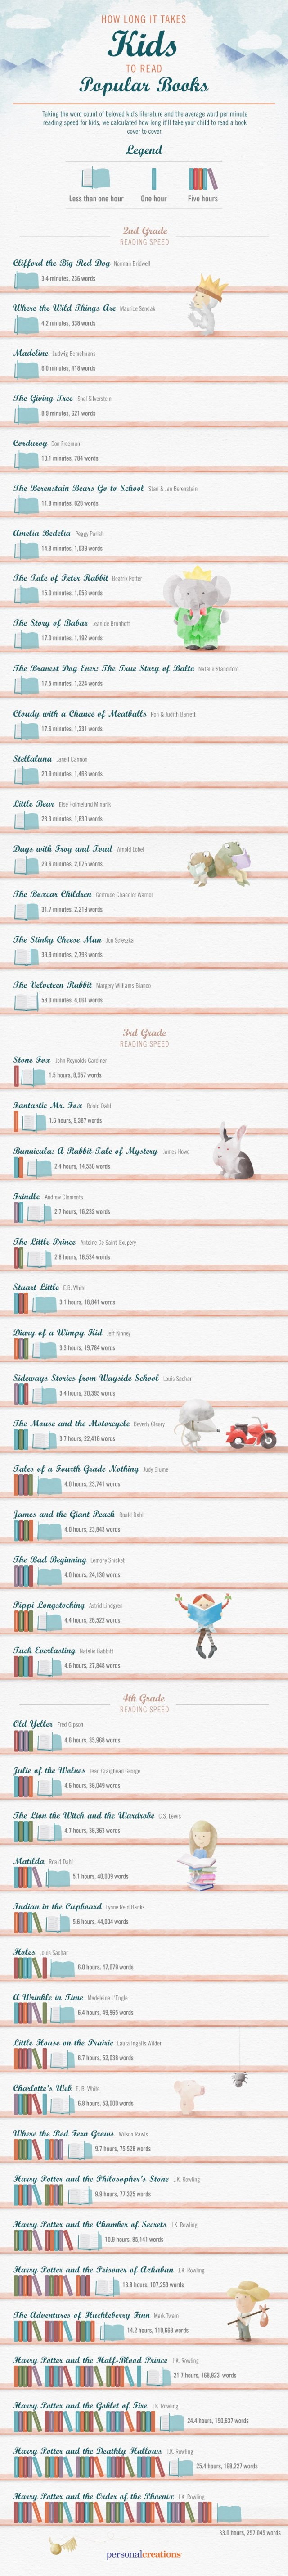 How Long it Takes Kids to Read Popular Books